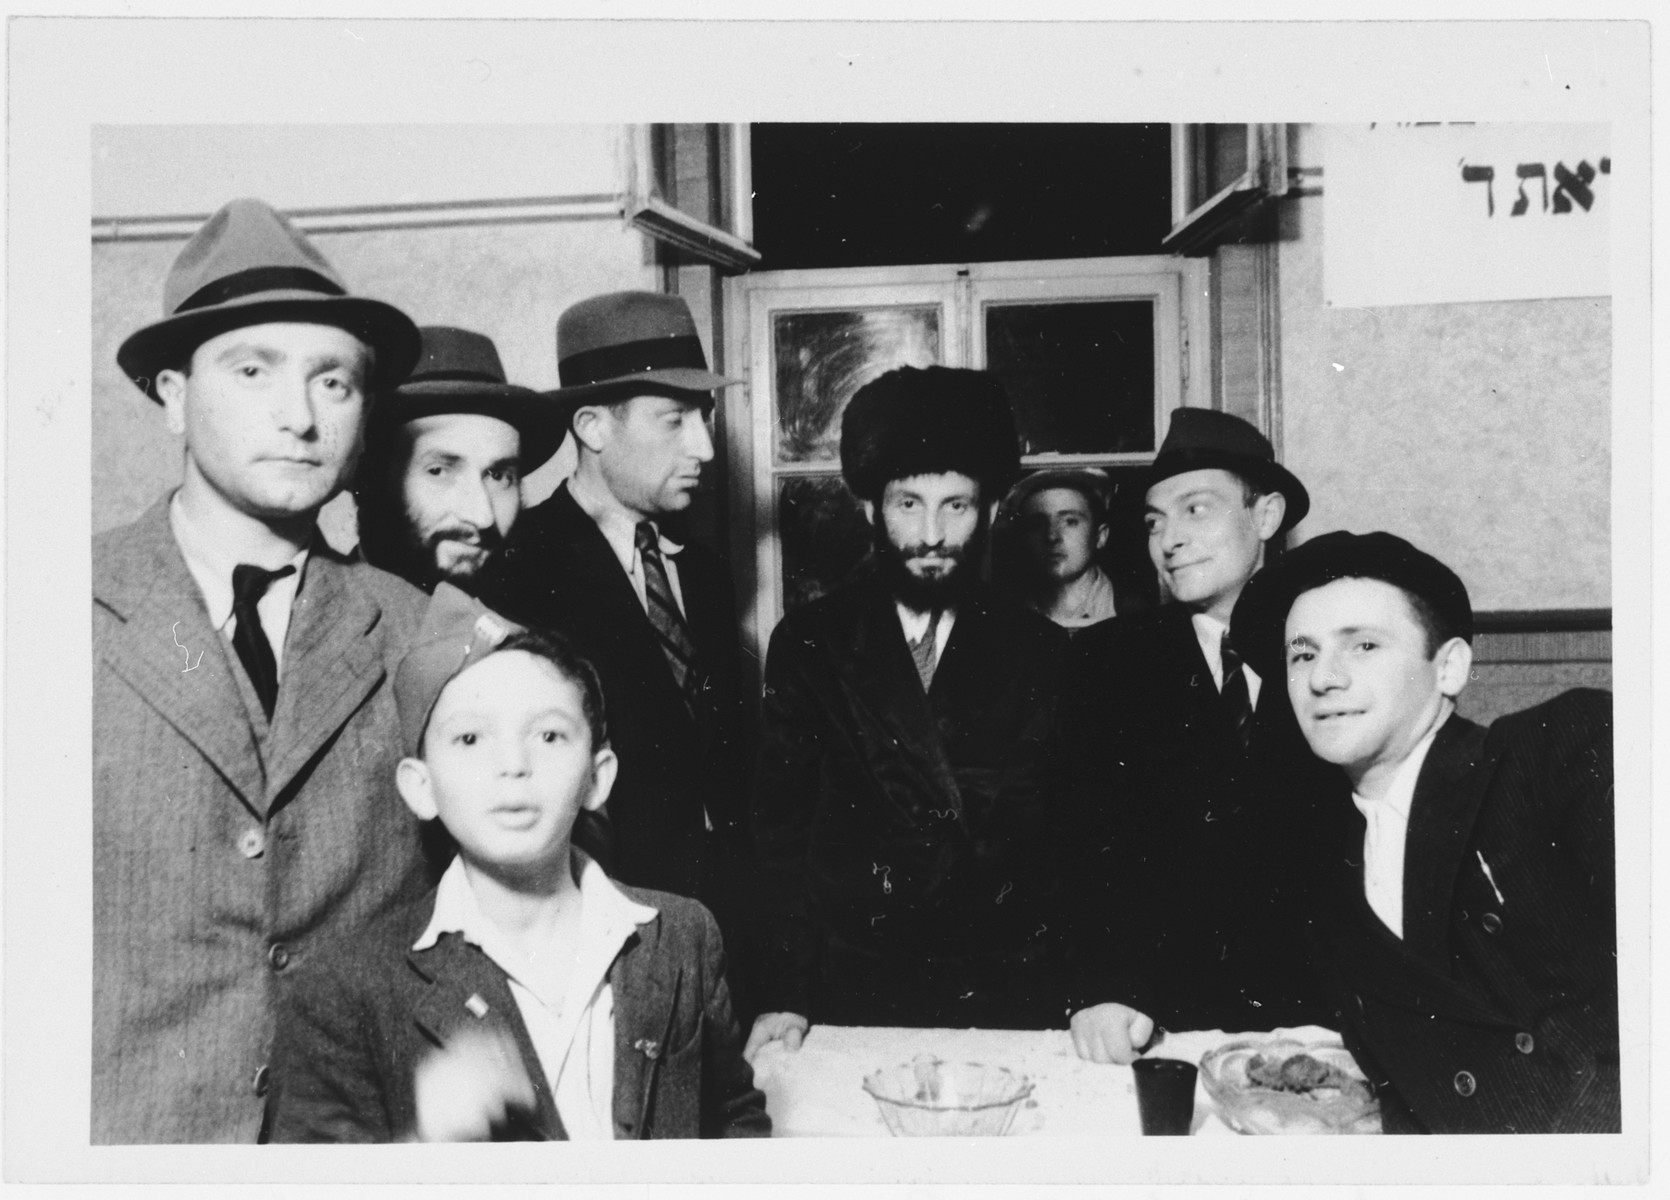 Group portrait of Orthodox men and a young boy standing next to a table in the Zeilsheim displaced persons' camp.